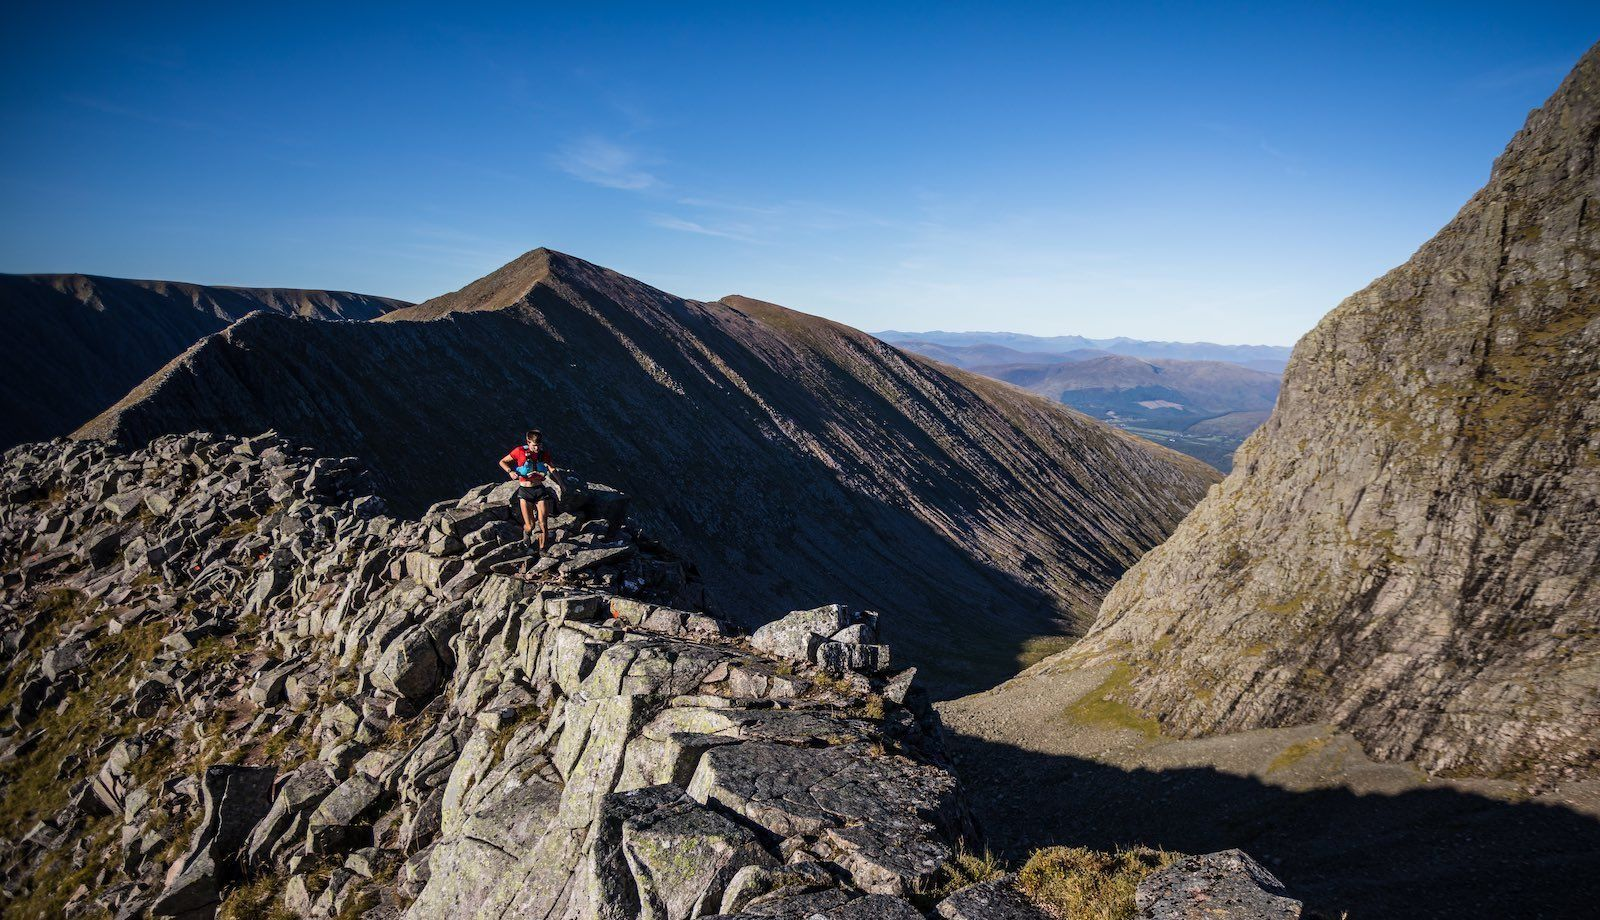 Salomon Ben Nevis Ultra - Third Male - Vincent Richrath - Carn Mor Dearg Arete - Copyright No Limits Photography web